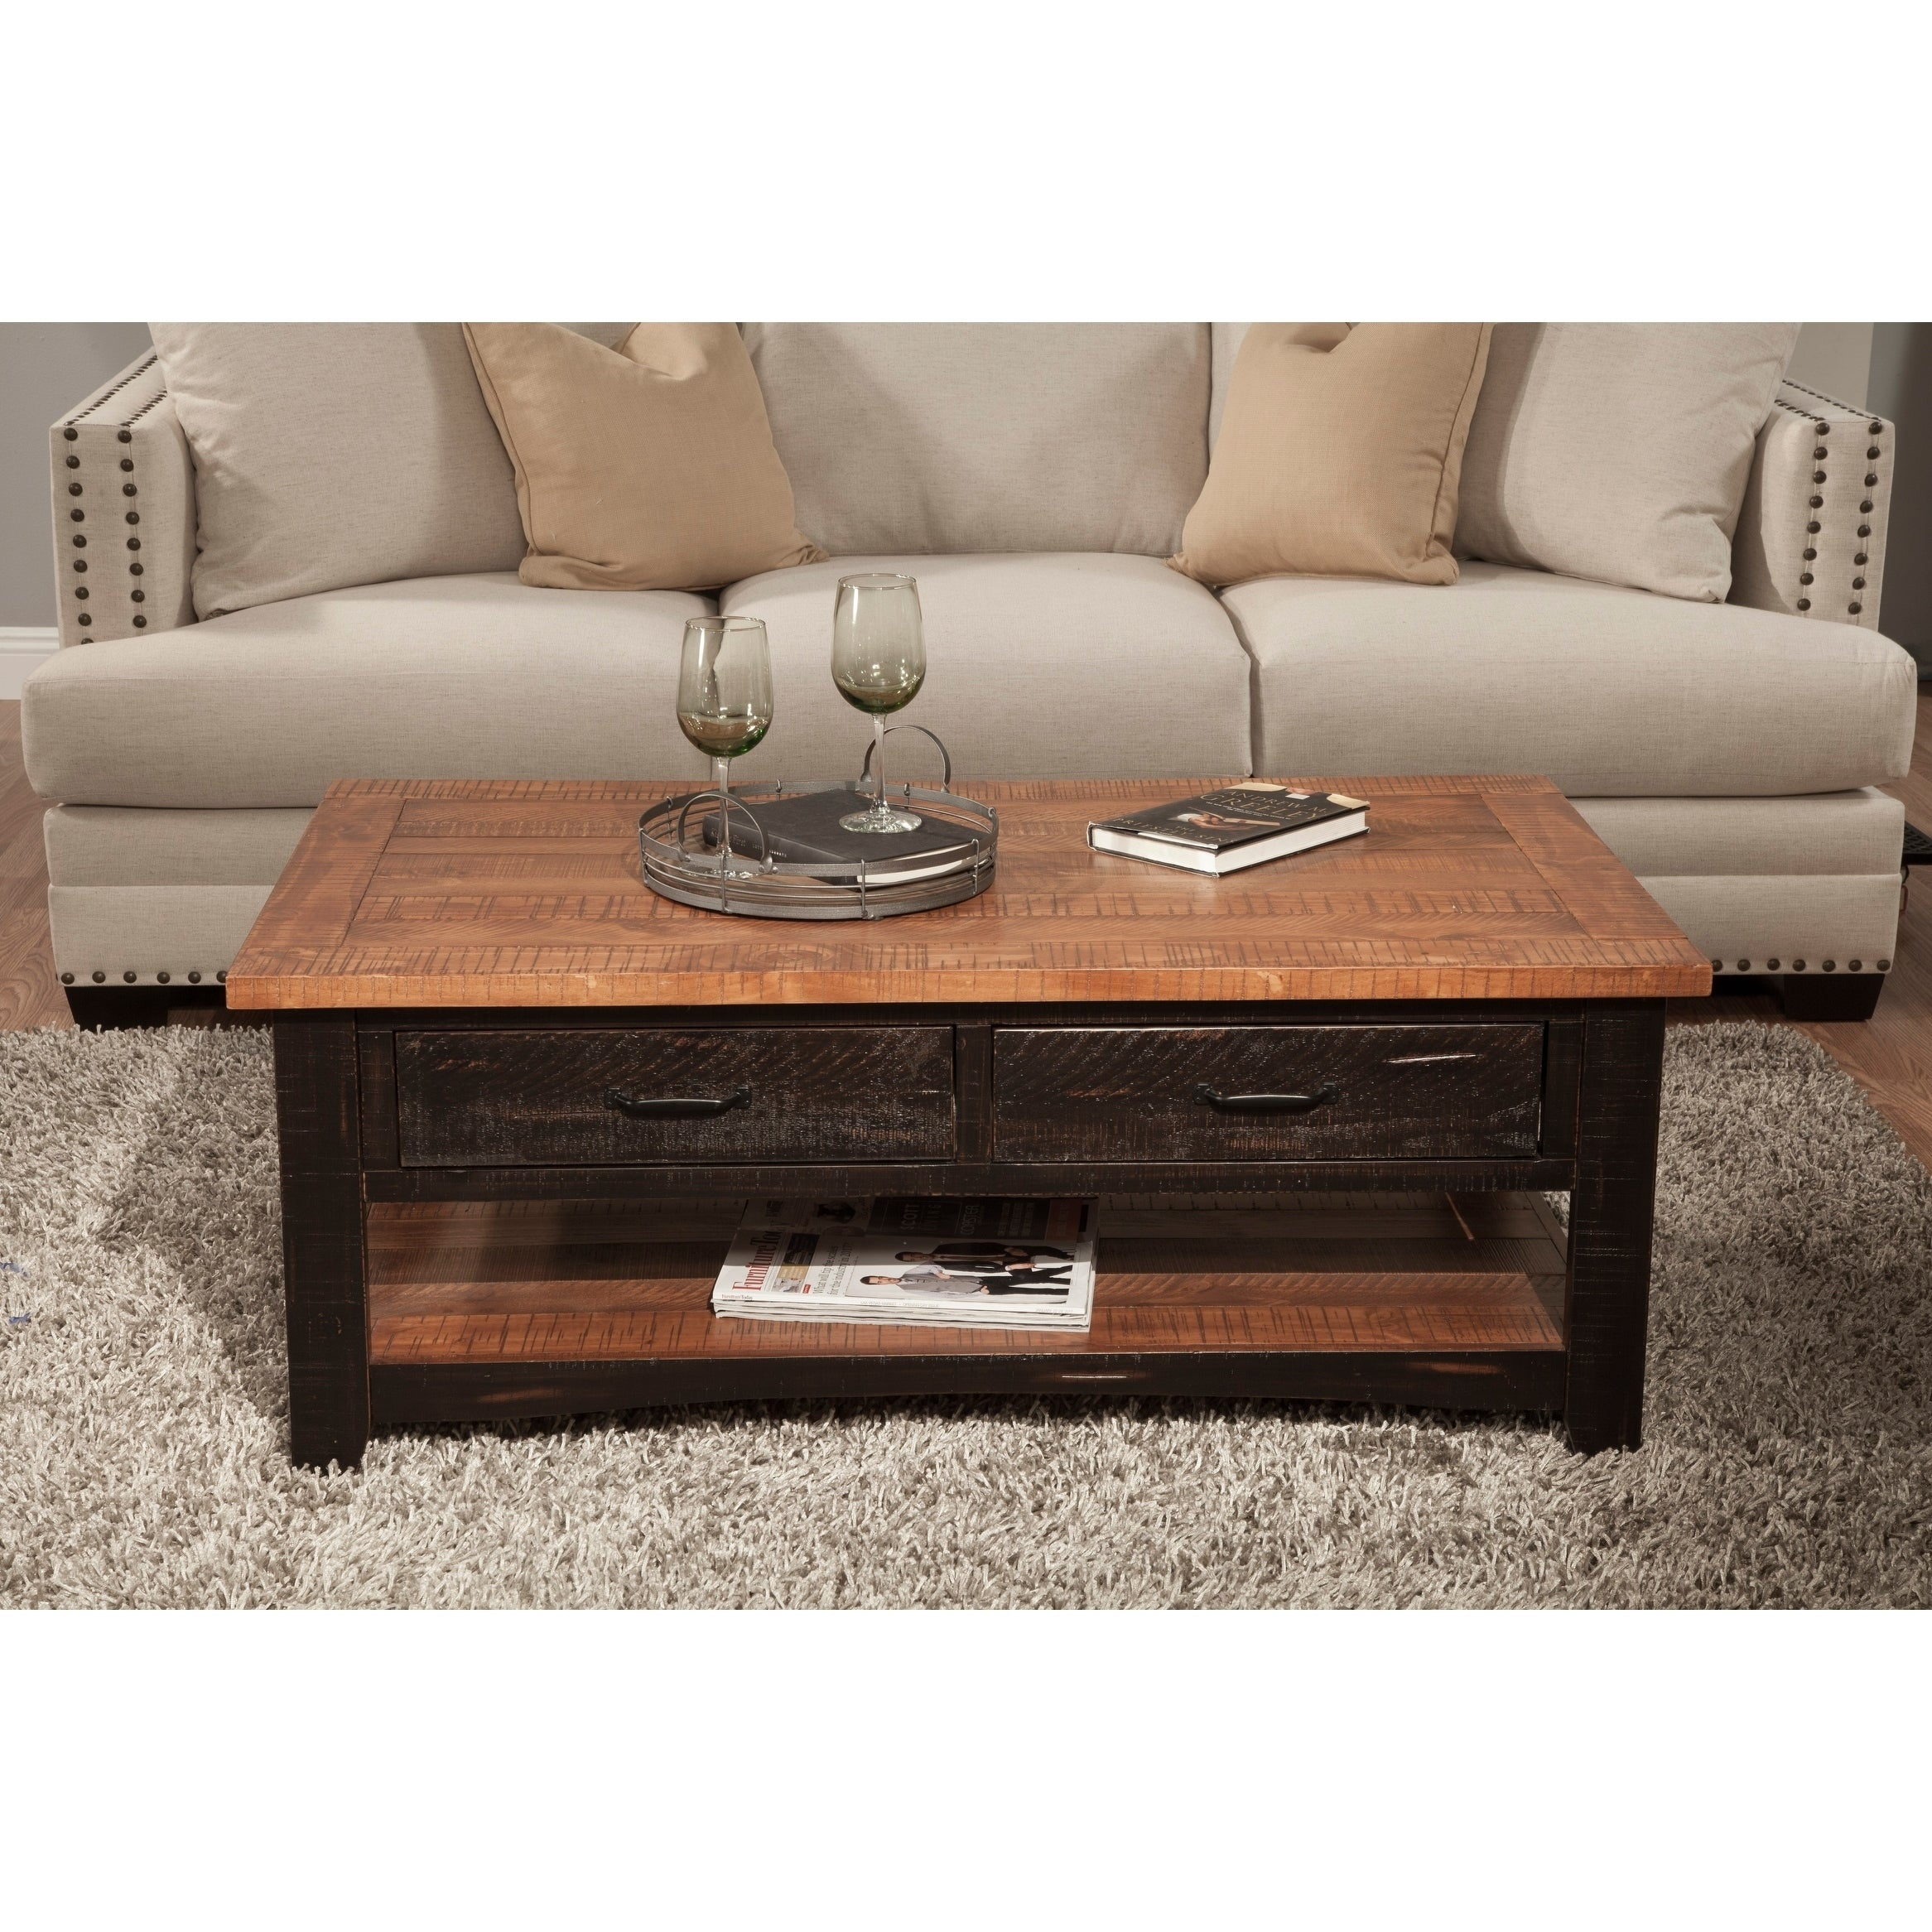 Martin Svensson Home Rustic Series 2 Drawer Solid Wood Coffee Table Free Shipping Today 20709233